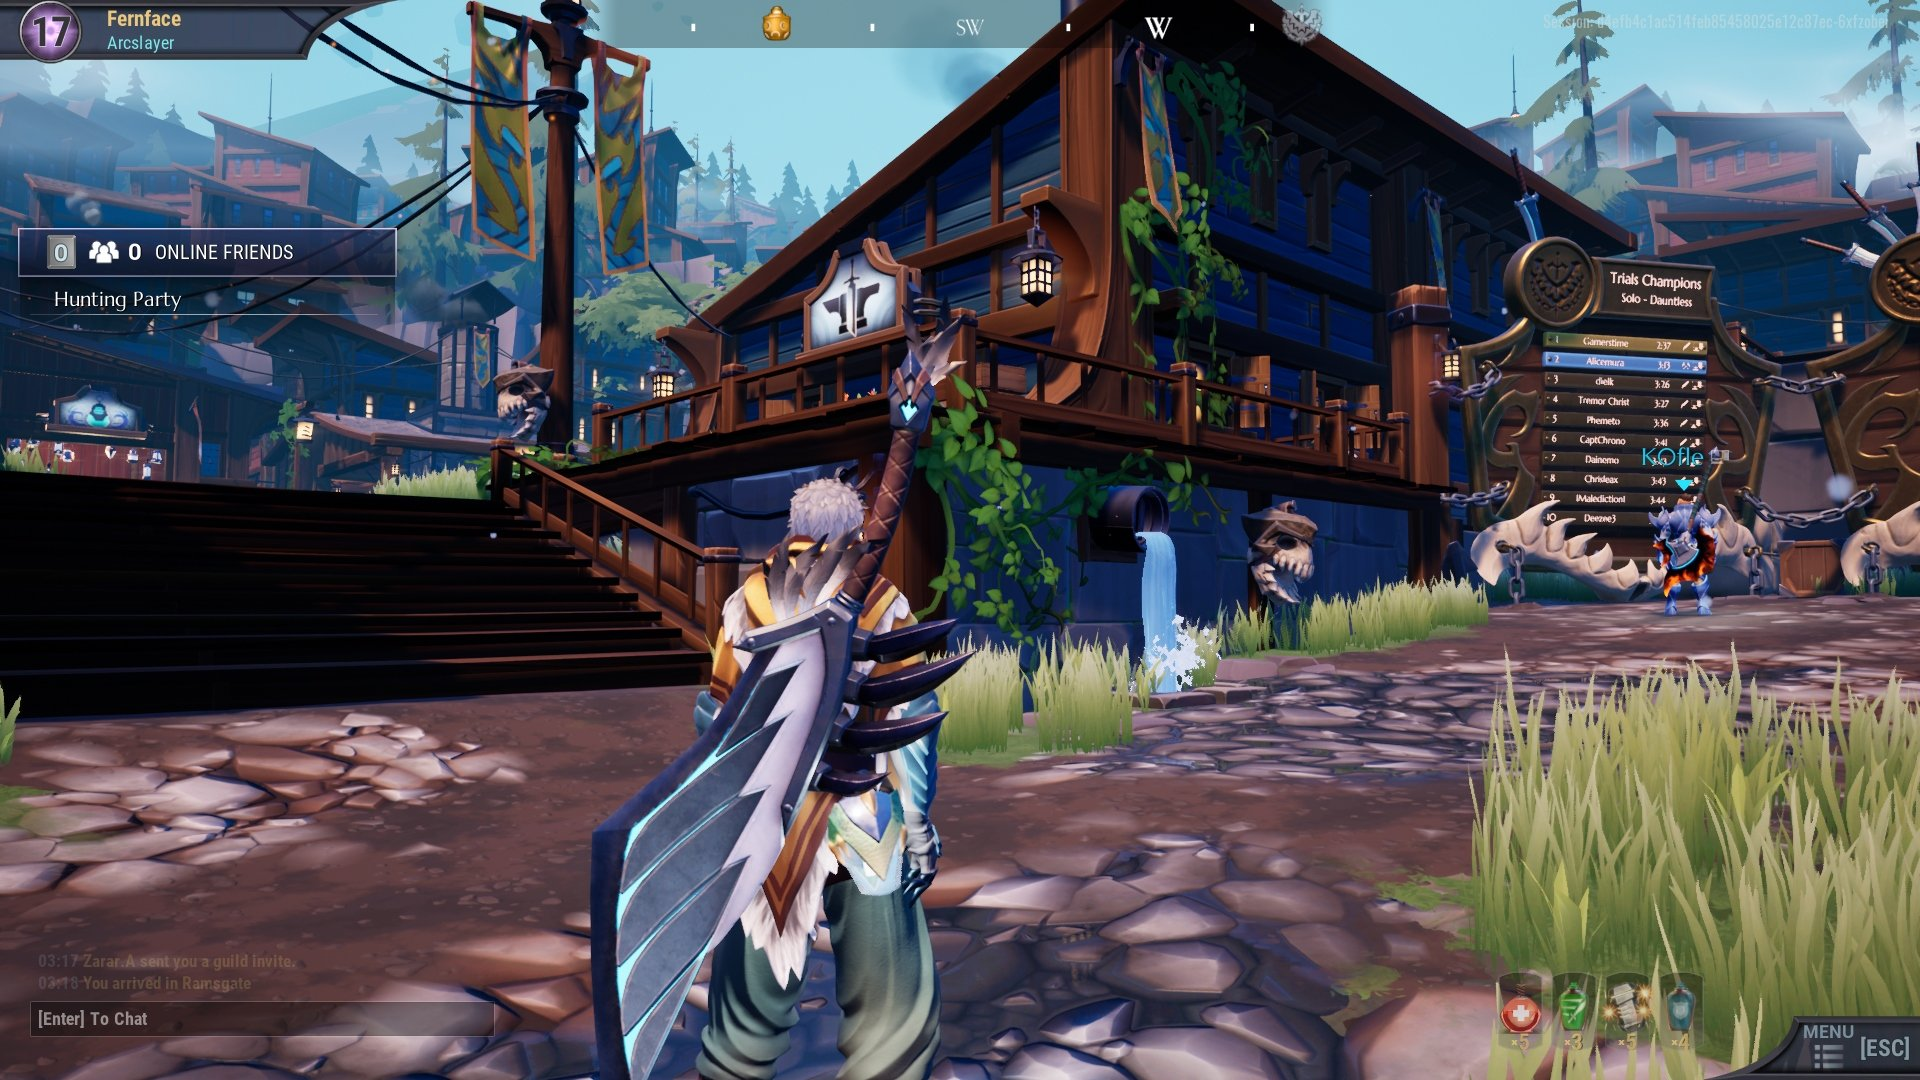 Dread Skull 4 - All daily dread skull locations in Dauntless